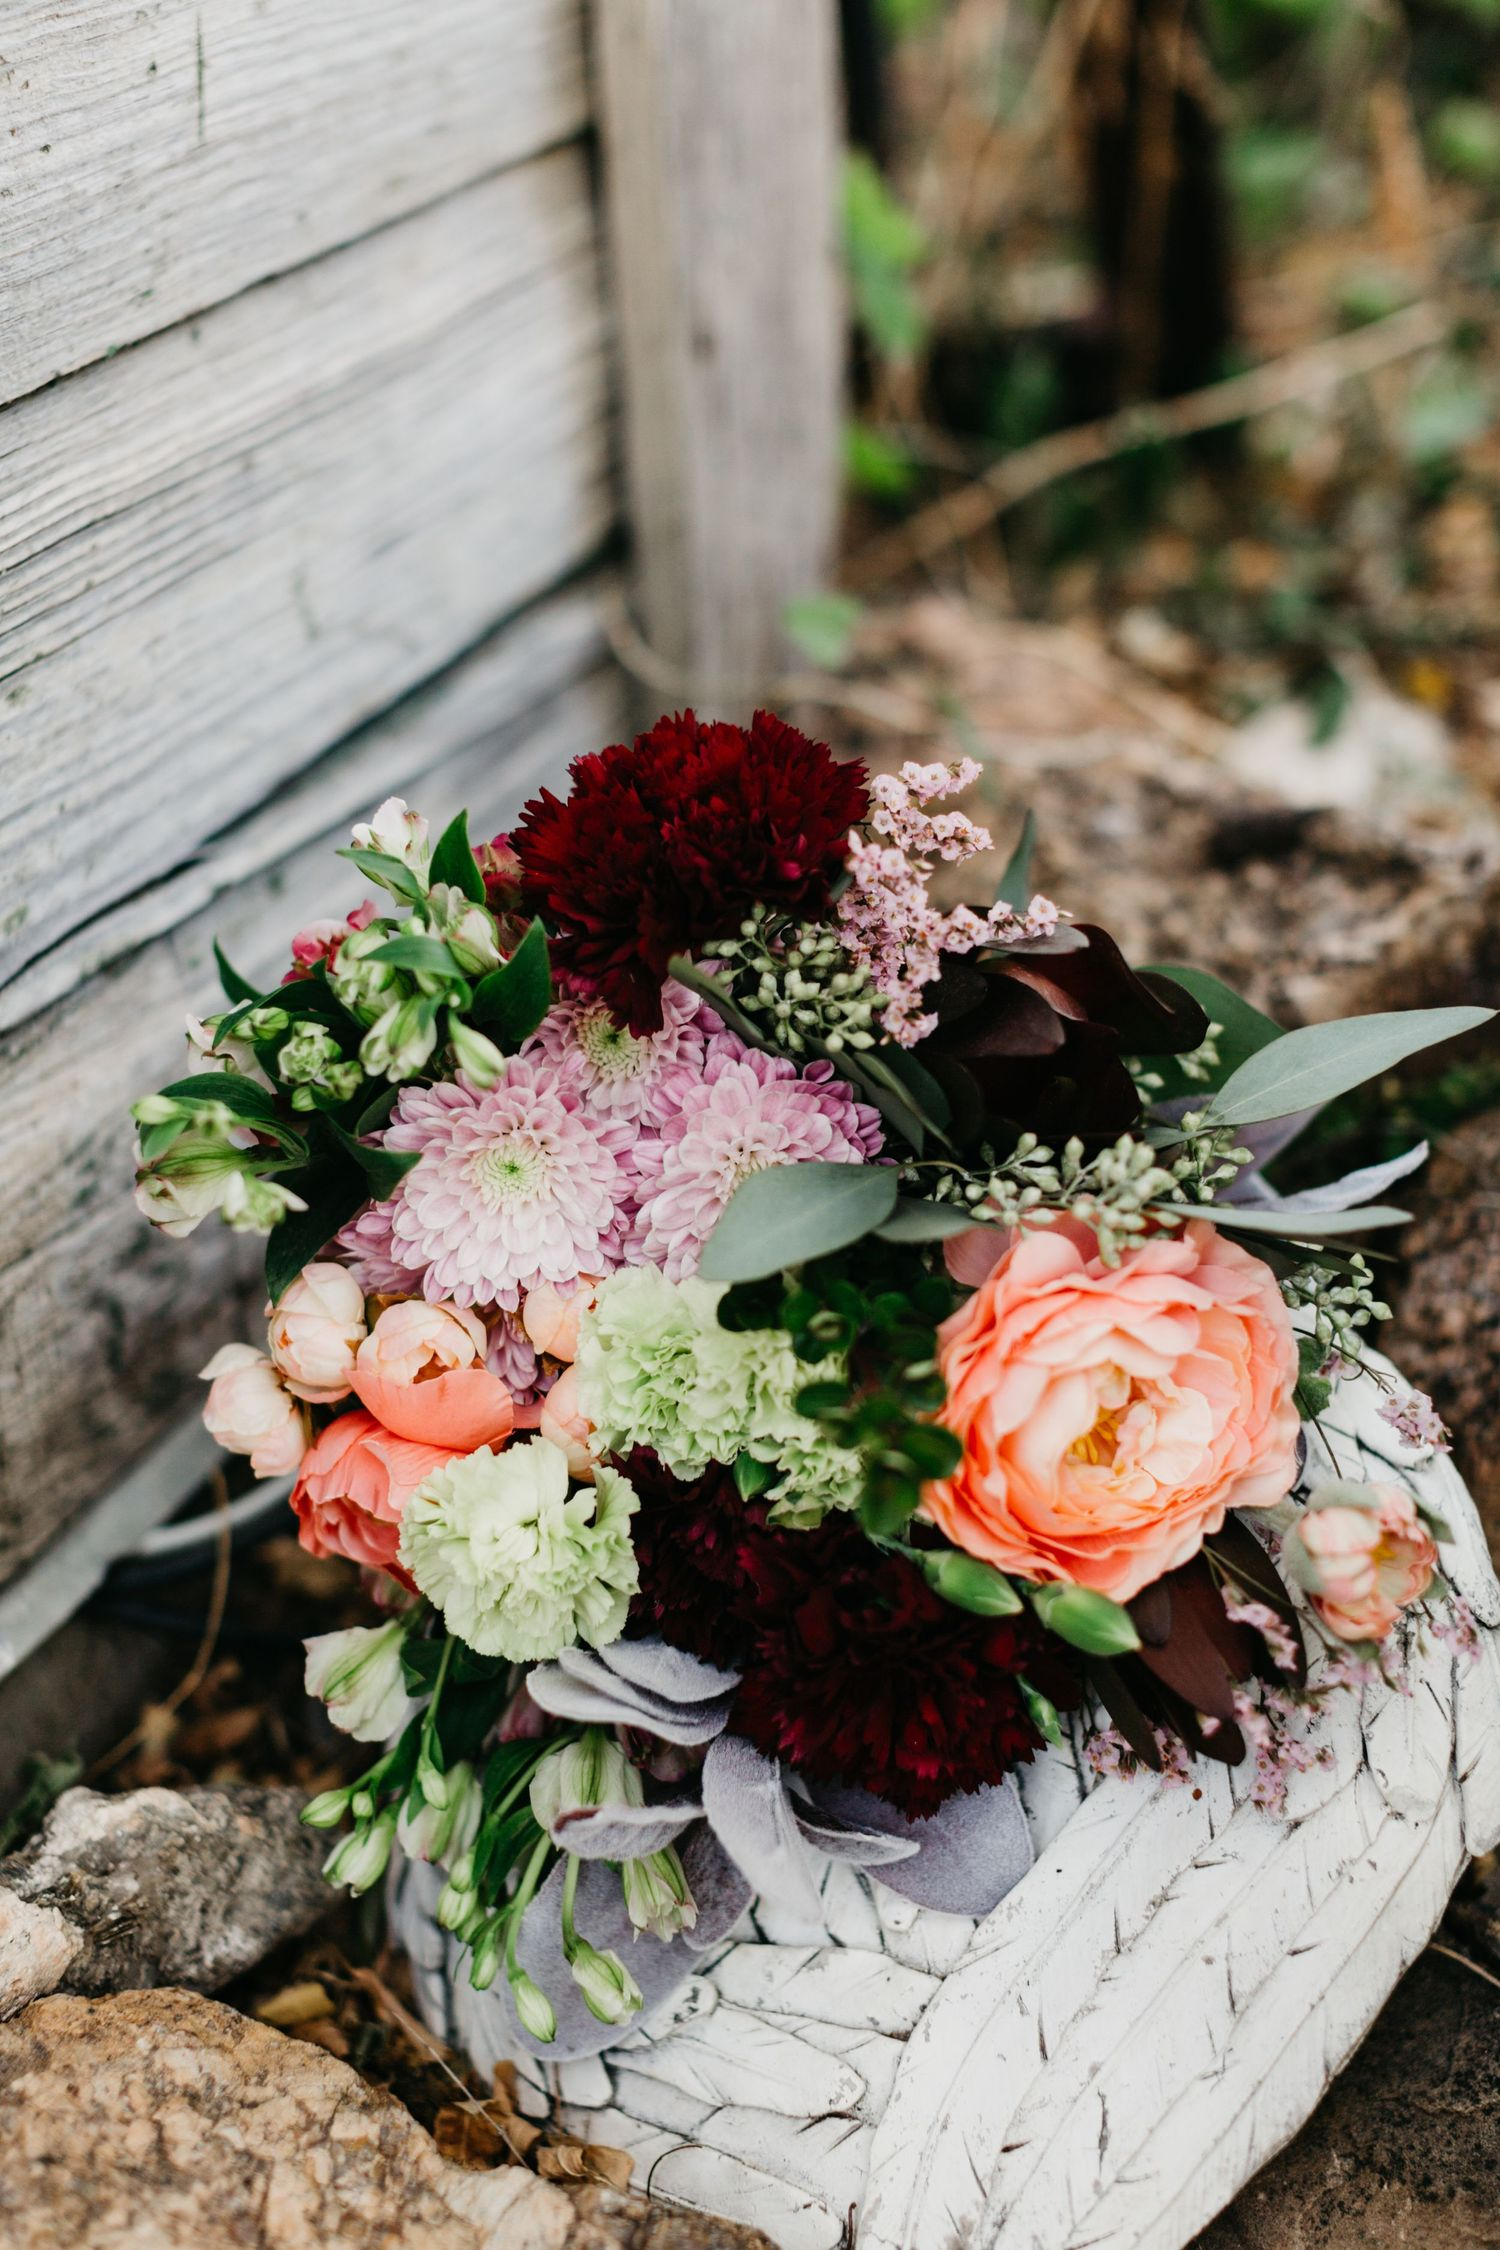 Unique Bouquet Ideas, Colorado Wedding Ideas, Colorado Springs Wedding, Floral Macro Photography, Classic Wedding Ideas